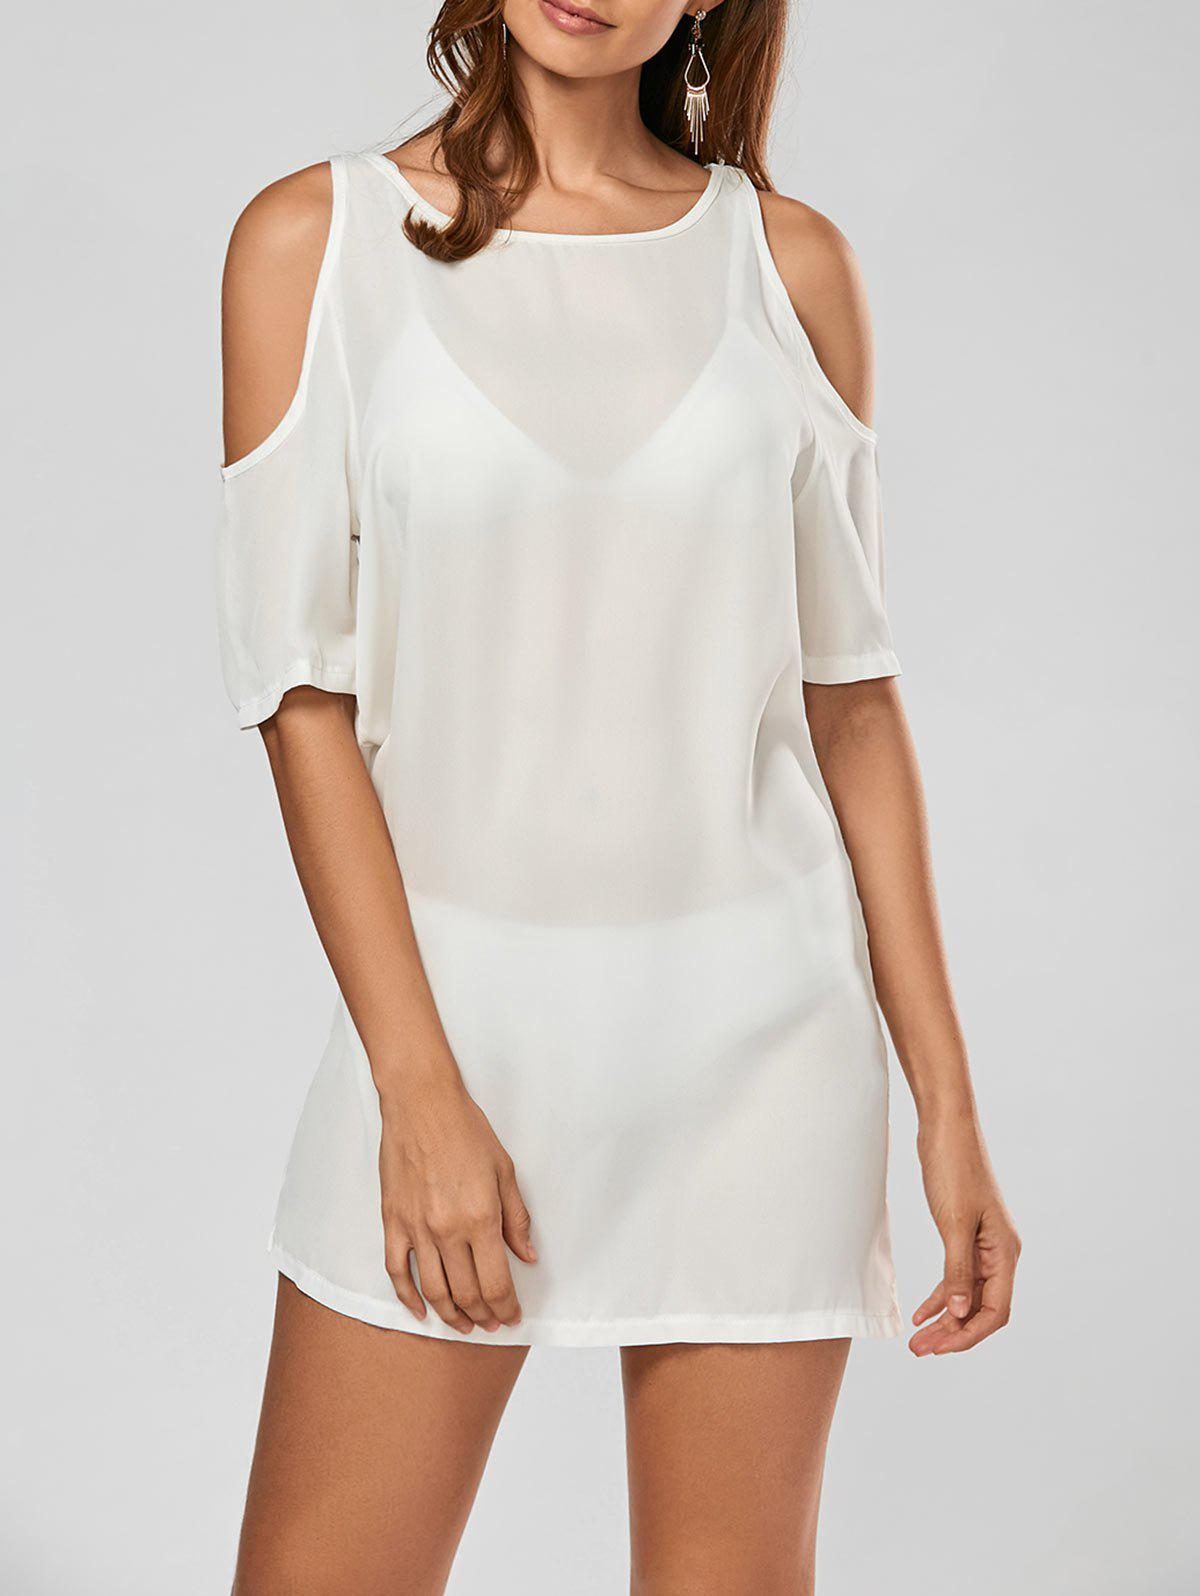 Cold Shoulder Mini Shift Chiffon Dress - WHITE L